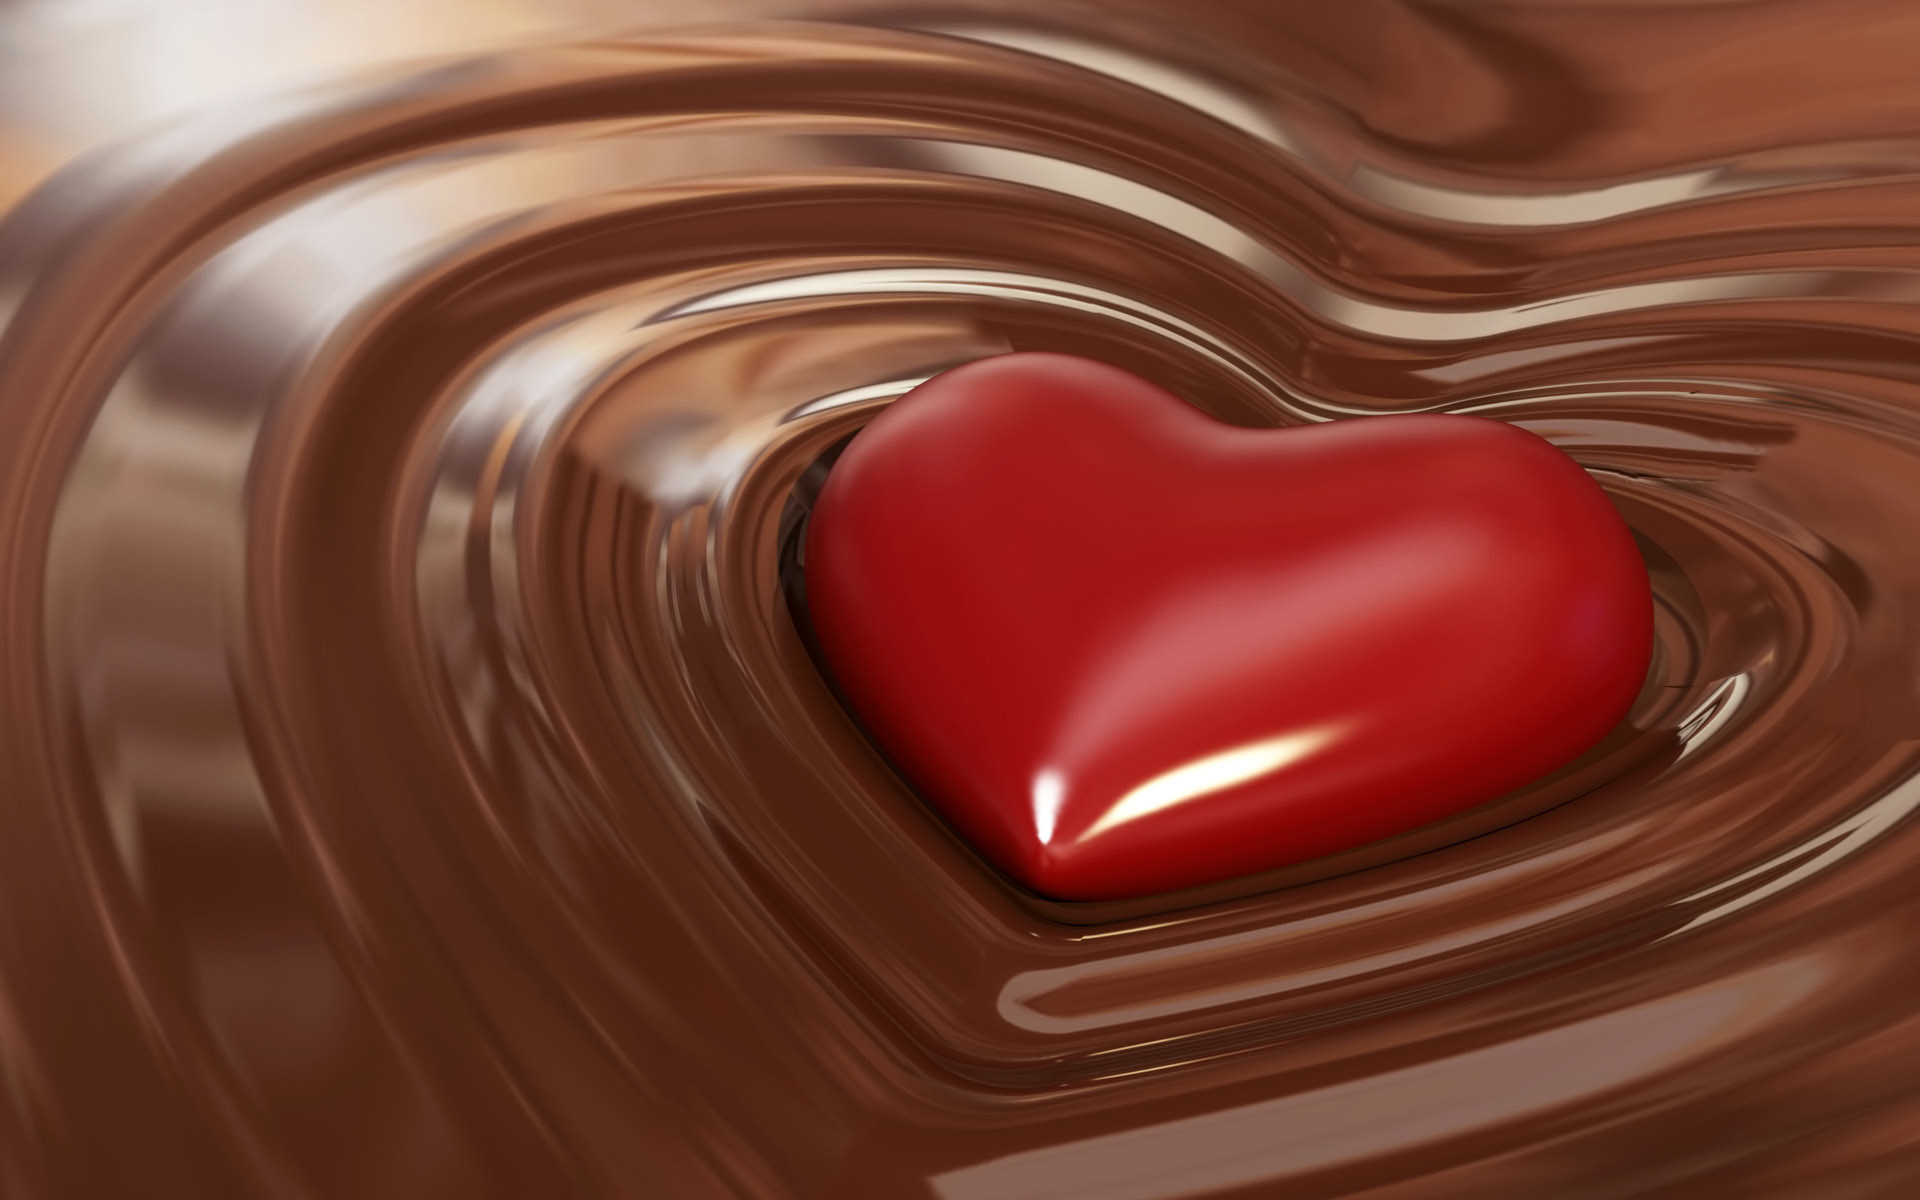 1920x1200 heart wallpapers chocolate